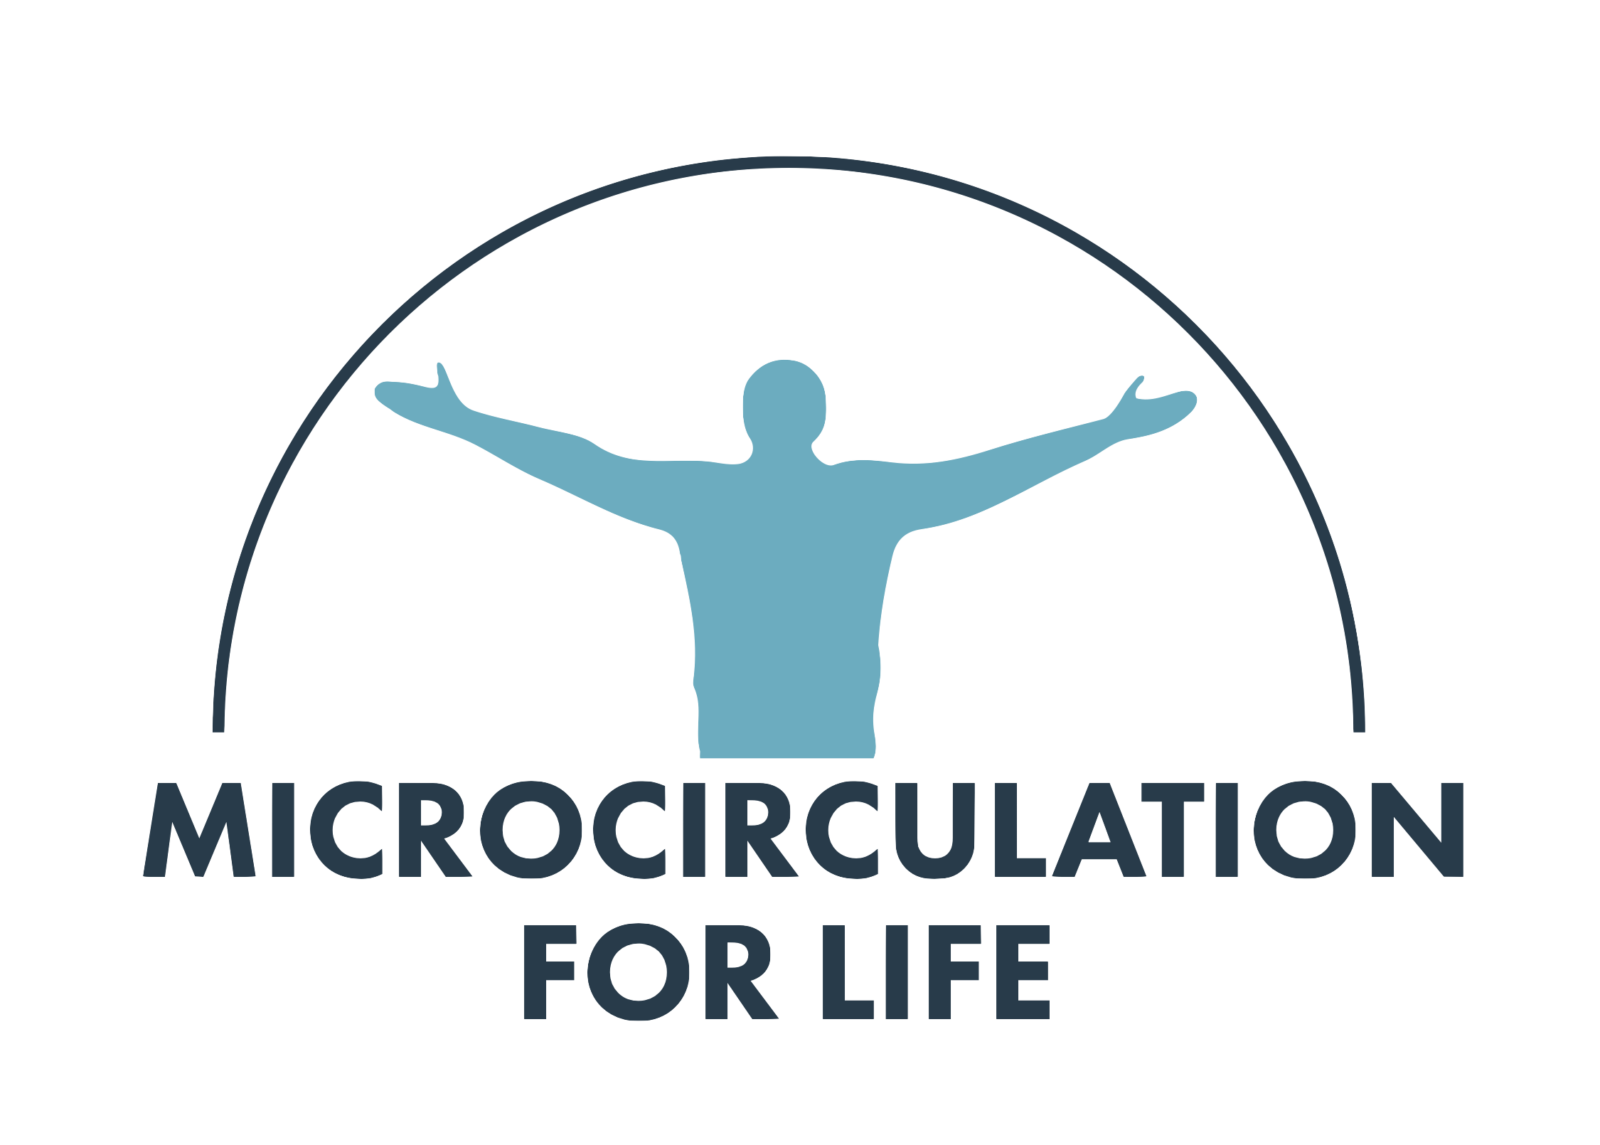 Microcirculation For Life